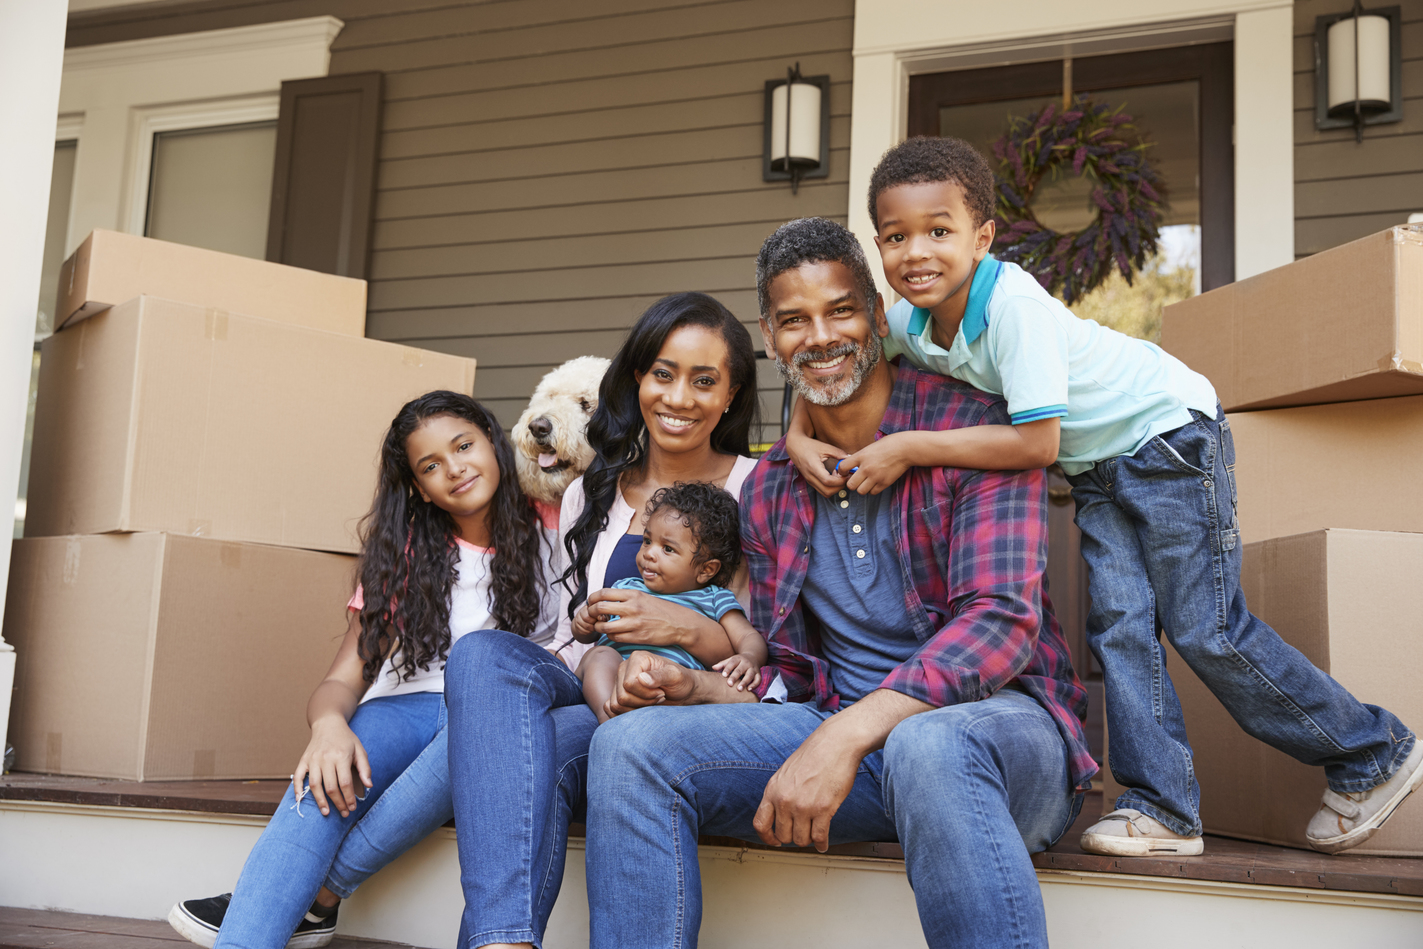 ARE YOU OUTGROWING YOUR CURRENT HOME?